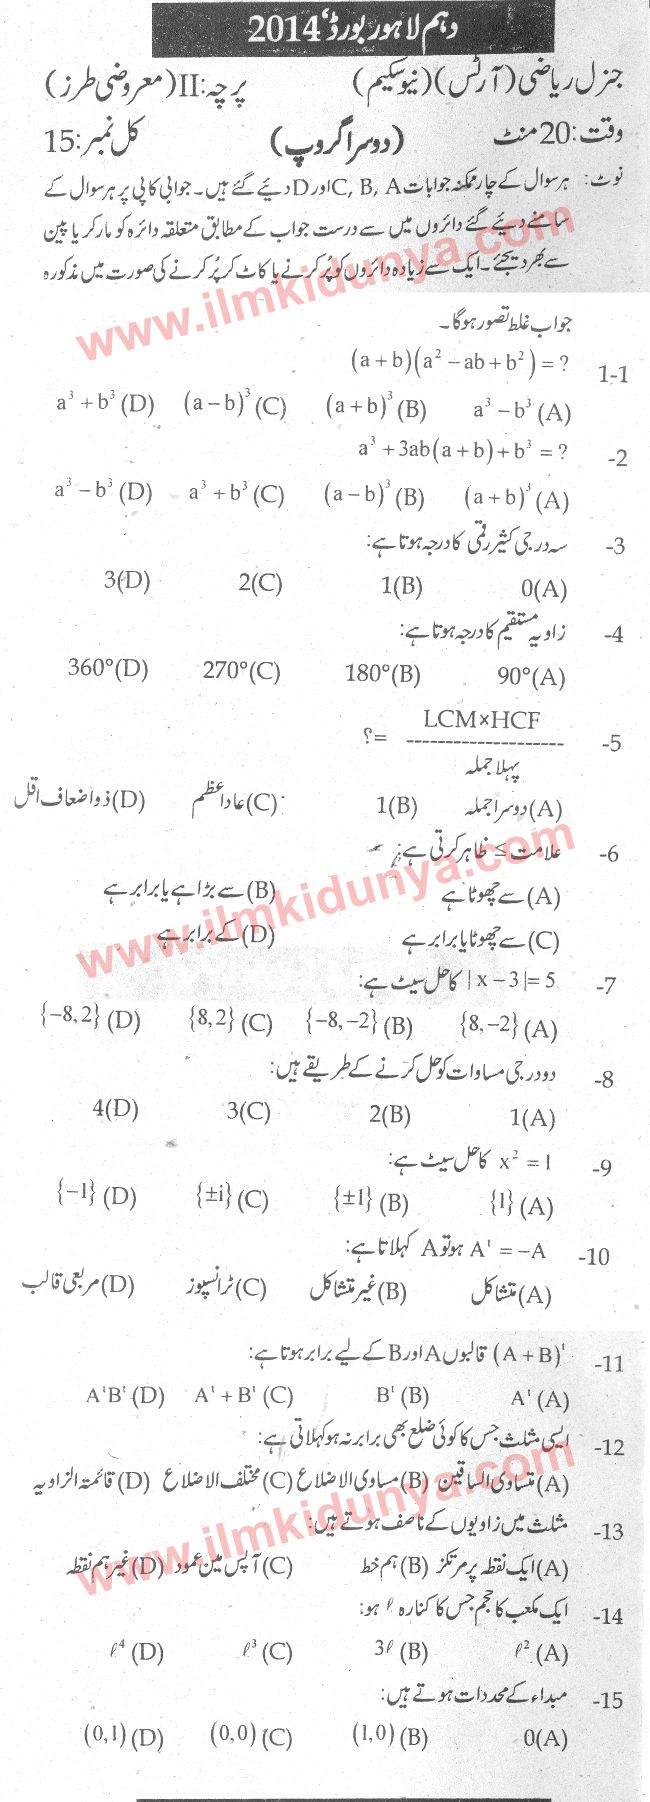 Past Papers 2014 Lahore Board 10th Class General Math